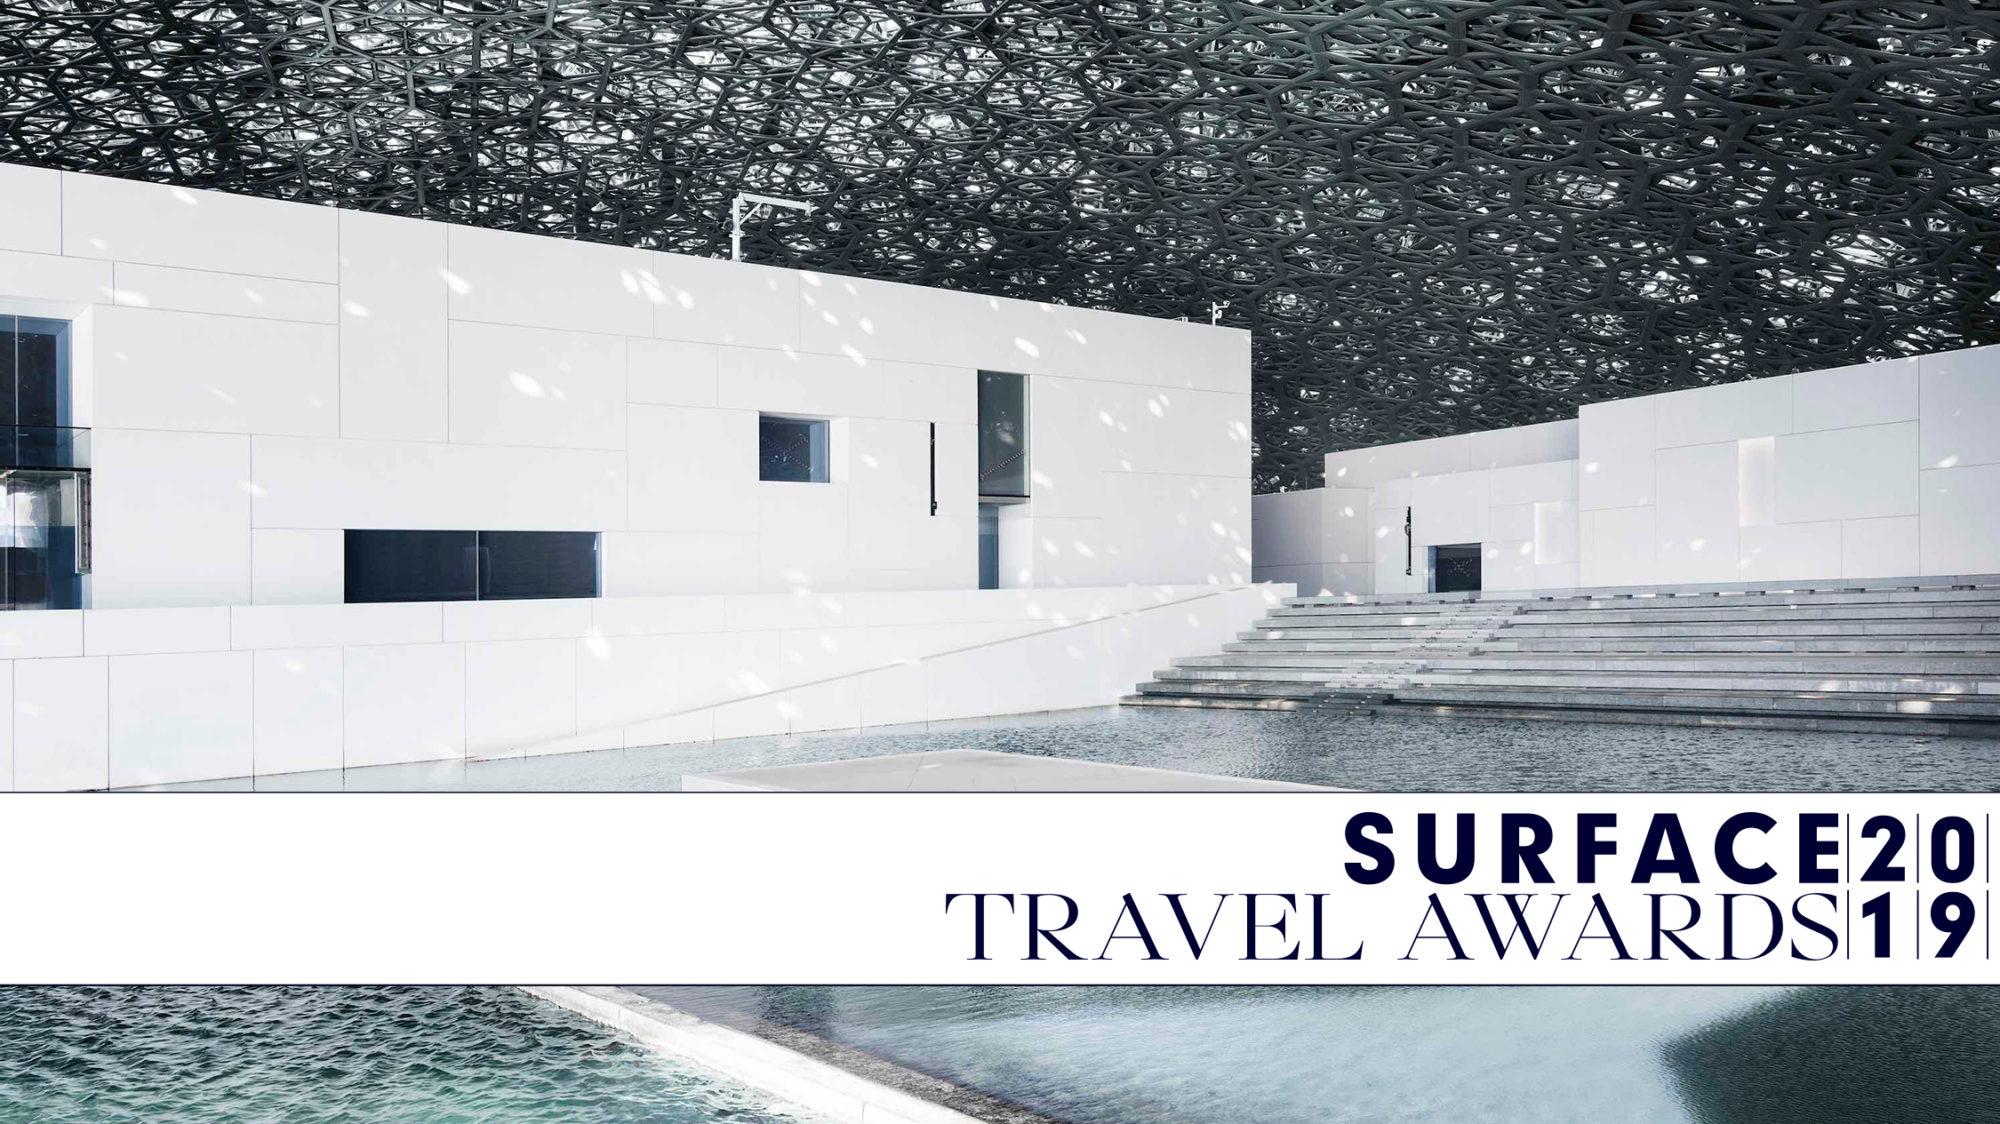 Announcing The Finalists for The 2019 Surface Travel Awards